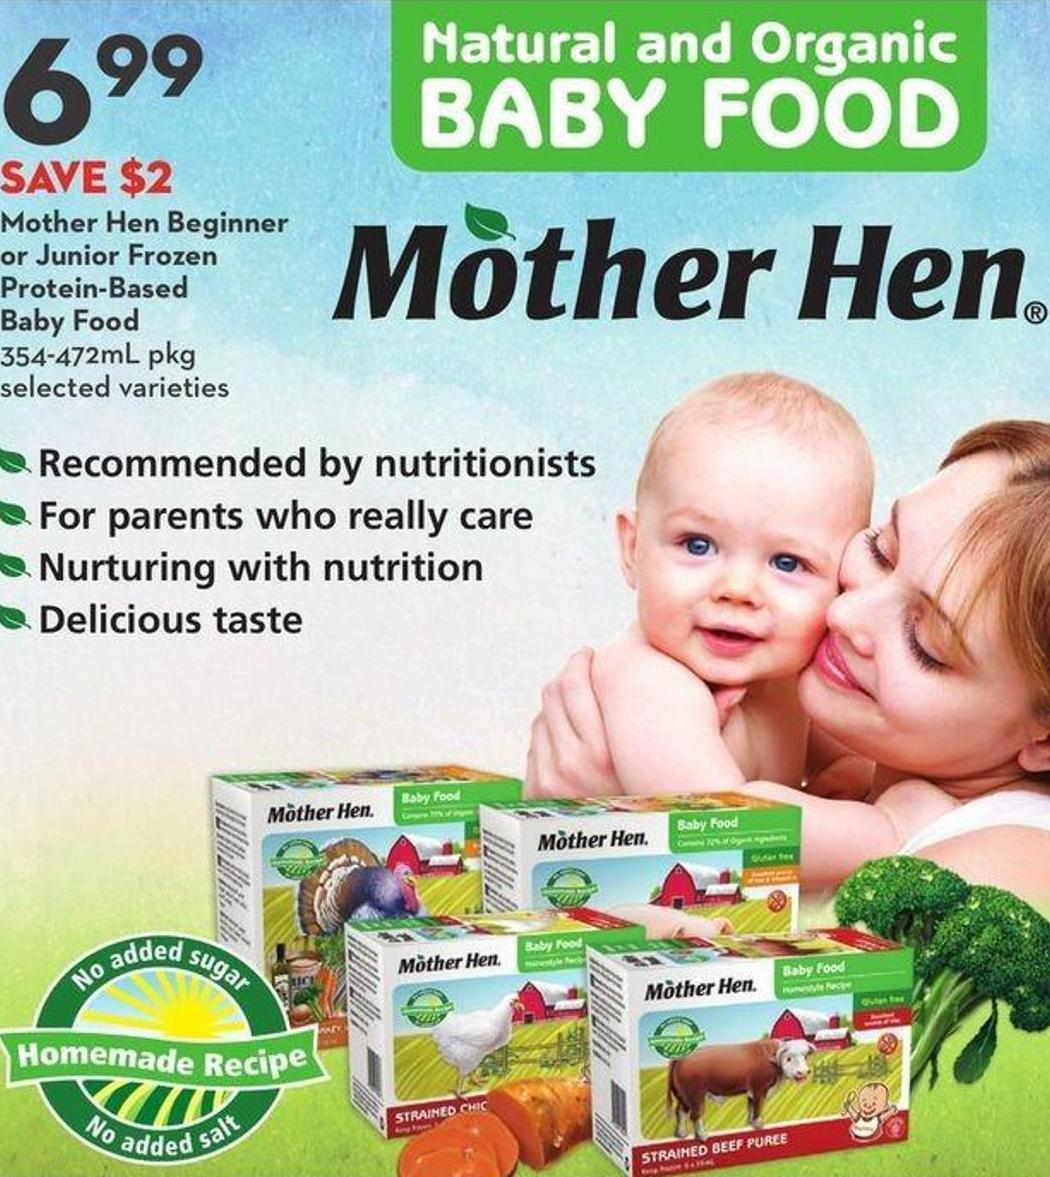 Mother Hen Beginner or Junior Frozen Protein-based Baby Food